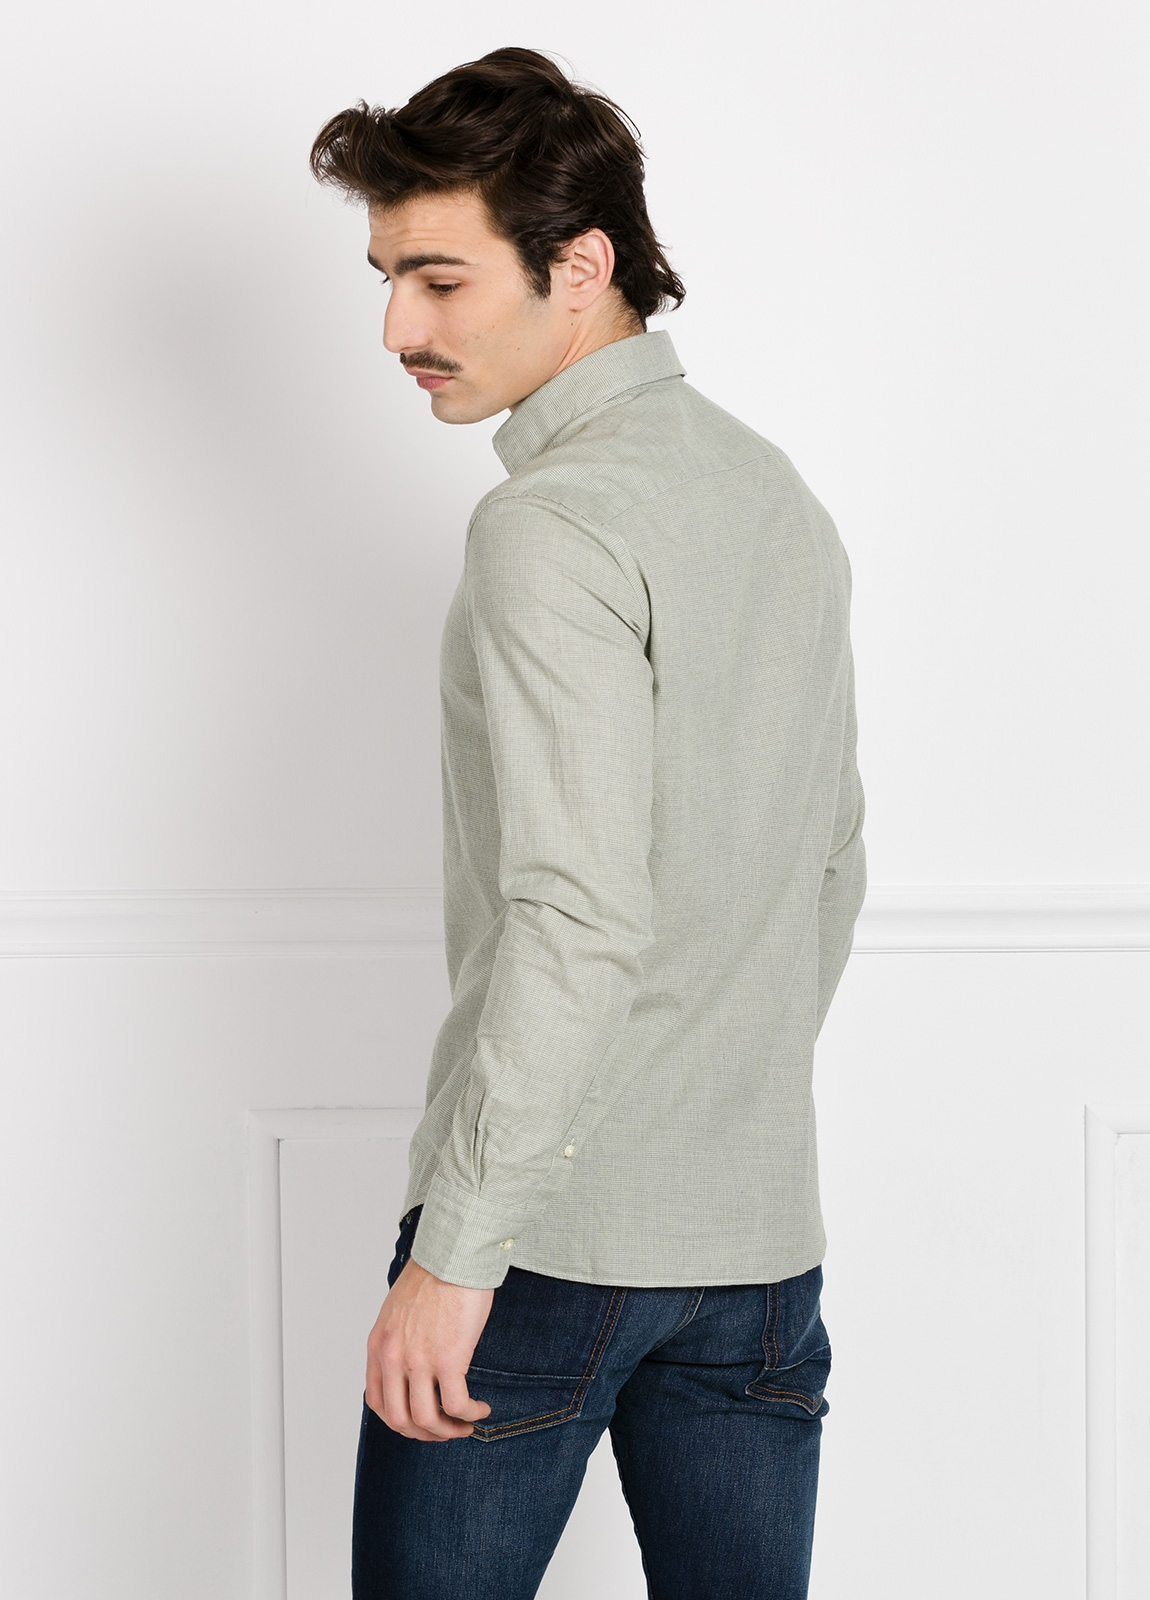 Camisa Leisure Wear REGULAR FIT modelo PORTO dibujo pata de gallo color verde. 100% Algodón. - Ítem1